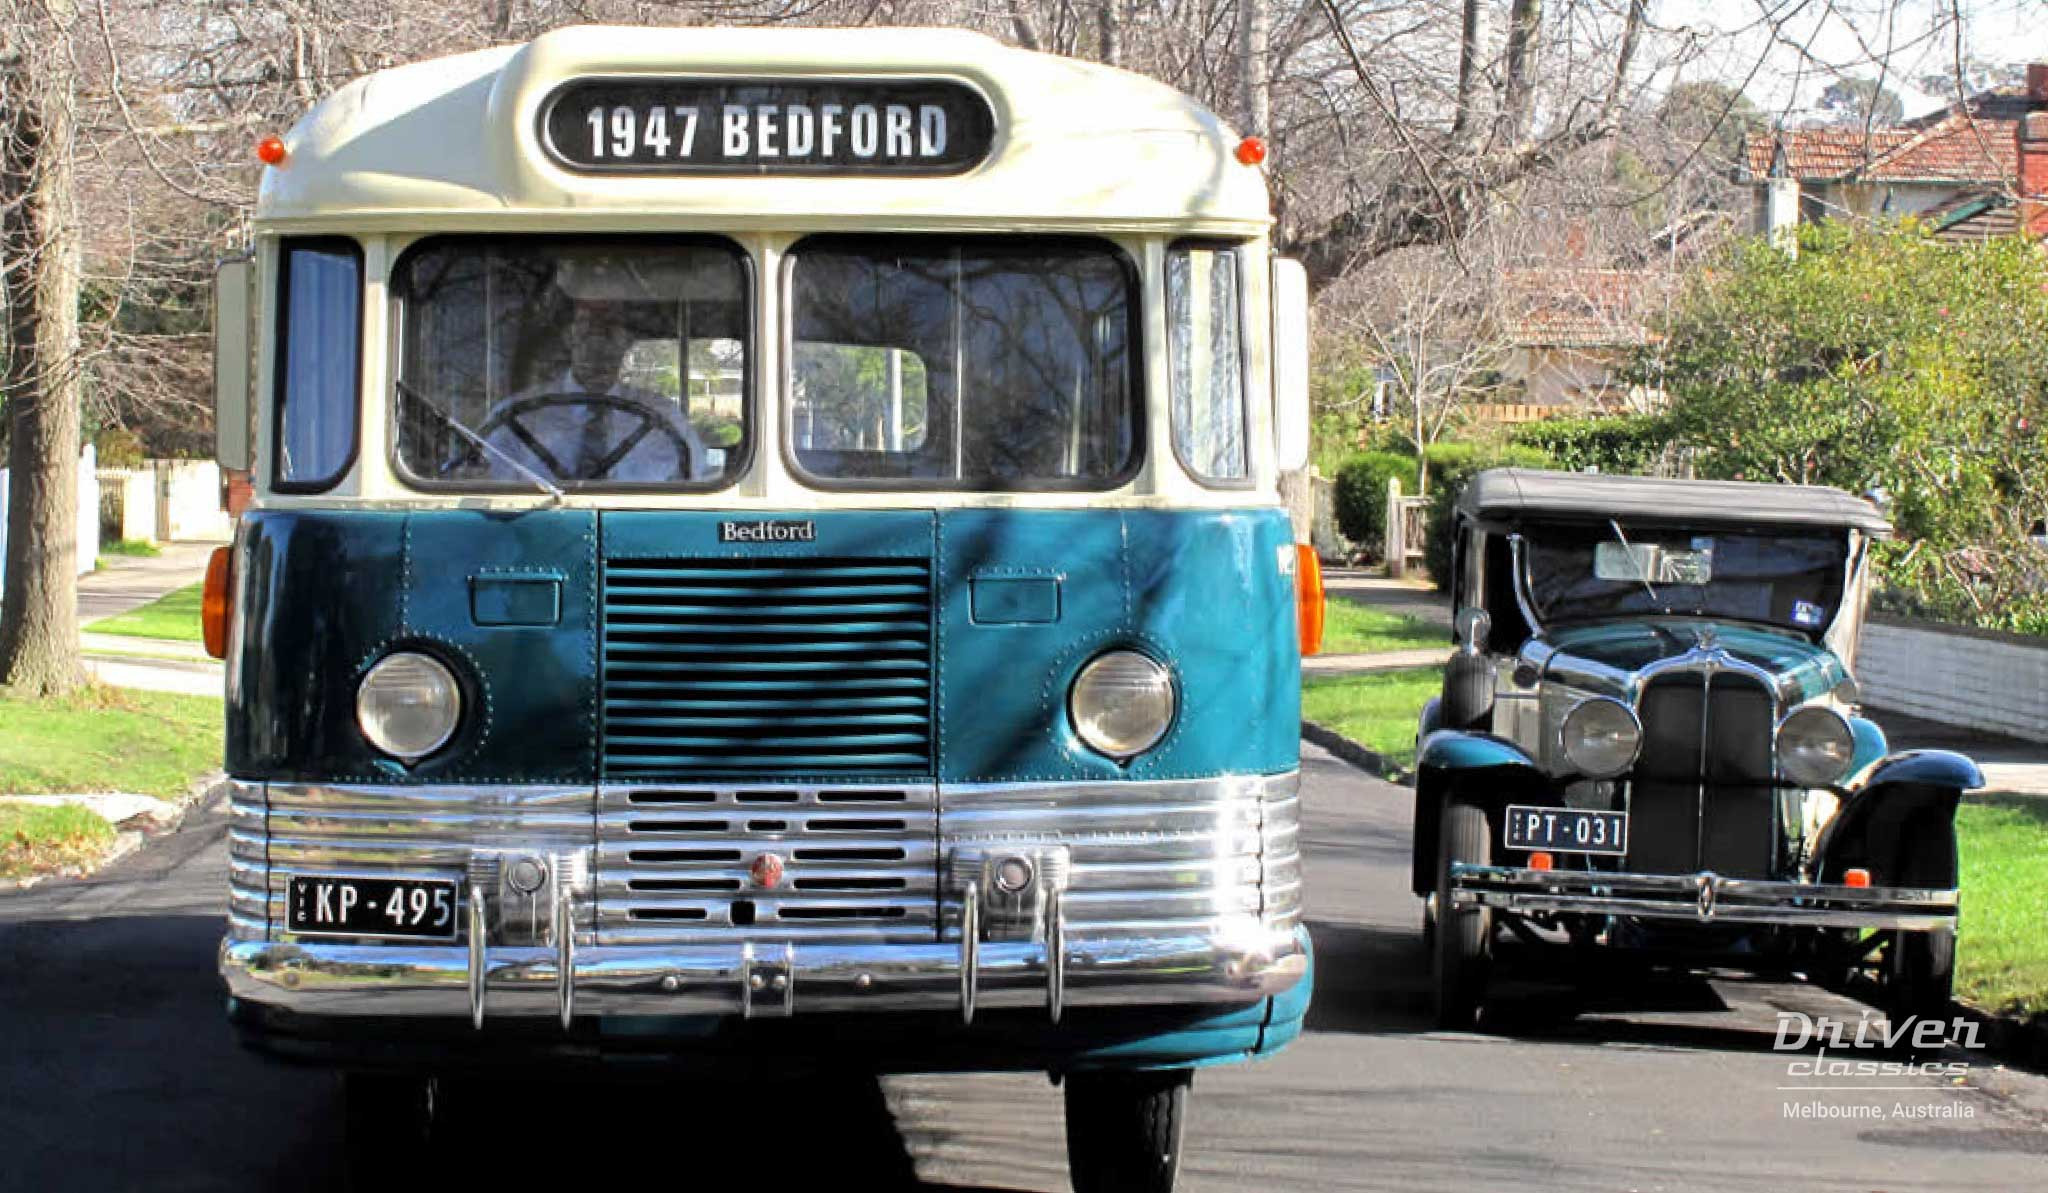 1947 Bedford OB bus front with 1930 Pontiac car